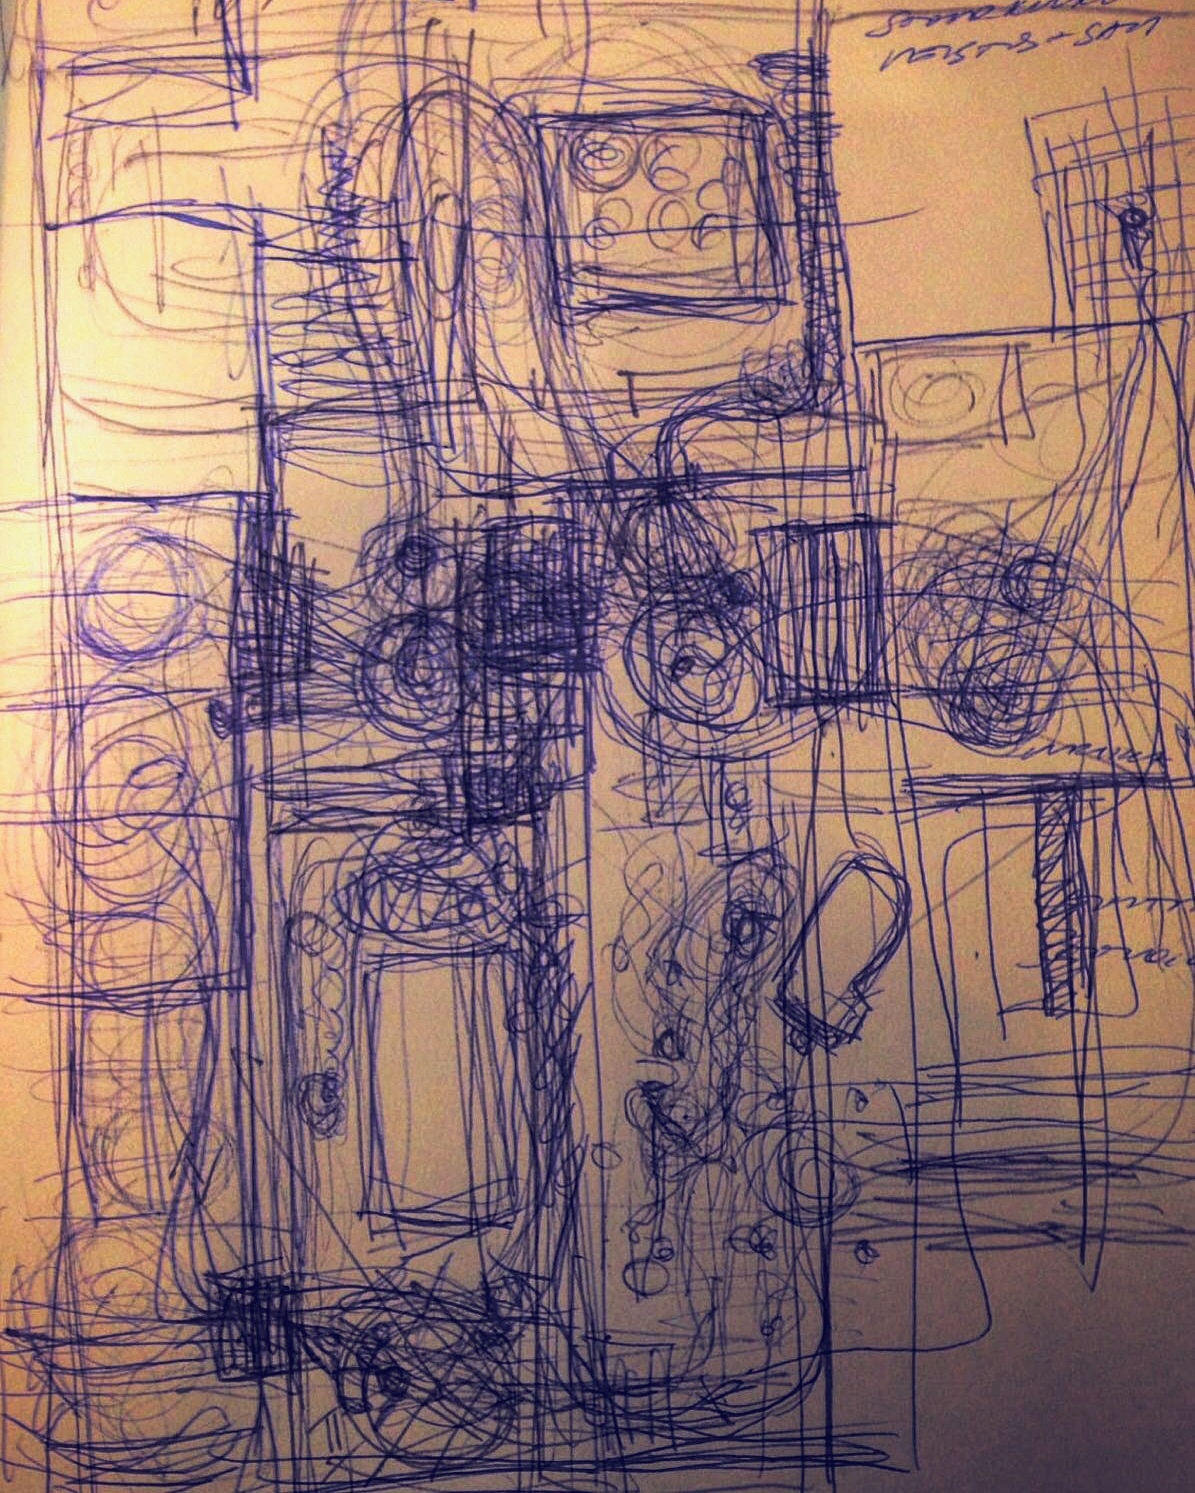 How the performance floated at the Museum. ( My scetch)